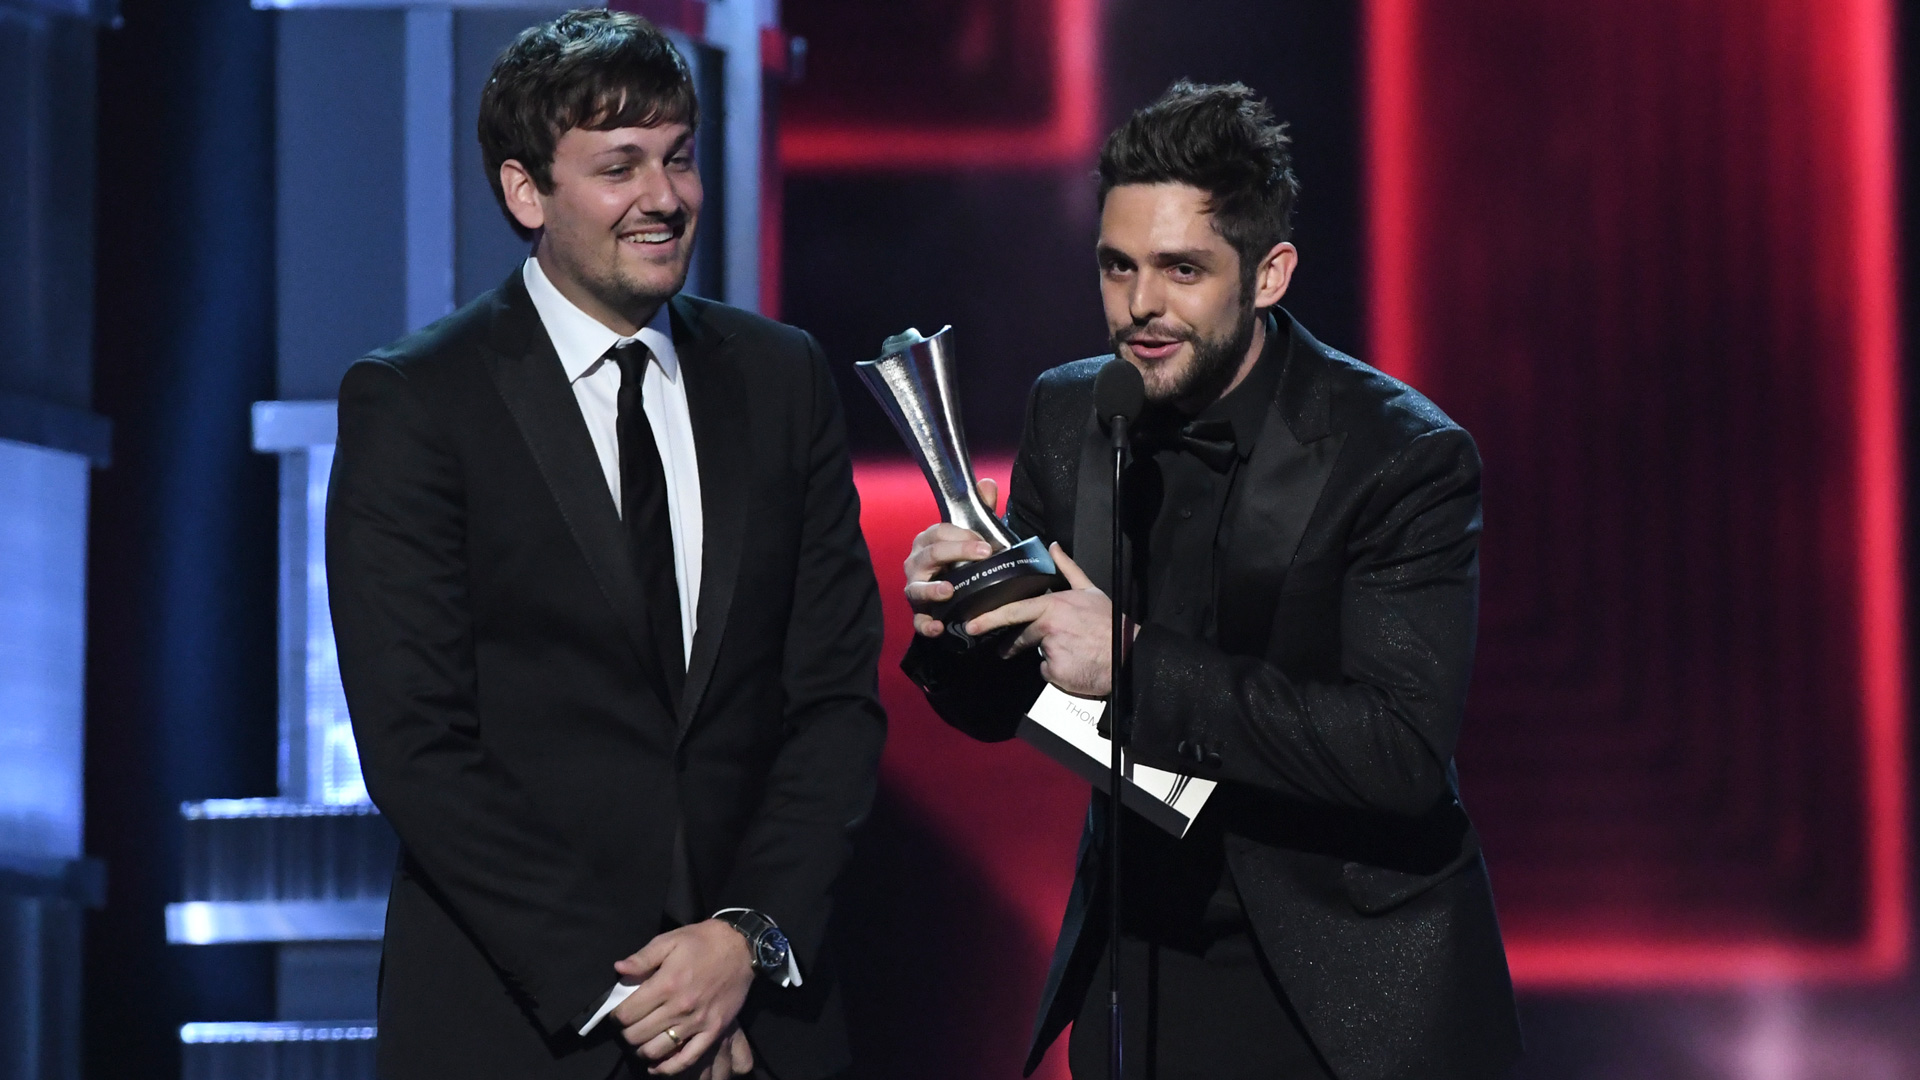 Thomas Rhett wins Song Of The Year at the 52nd ACM Awards